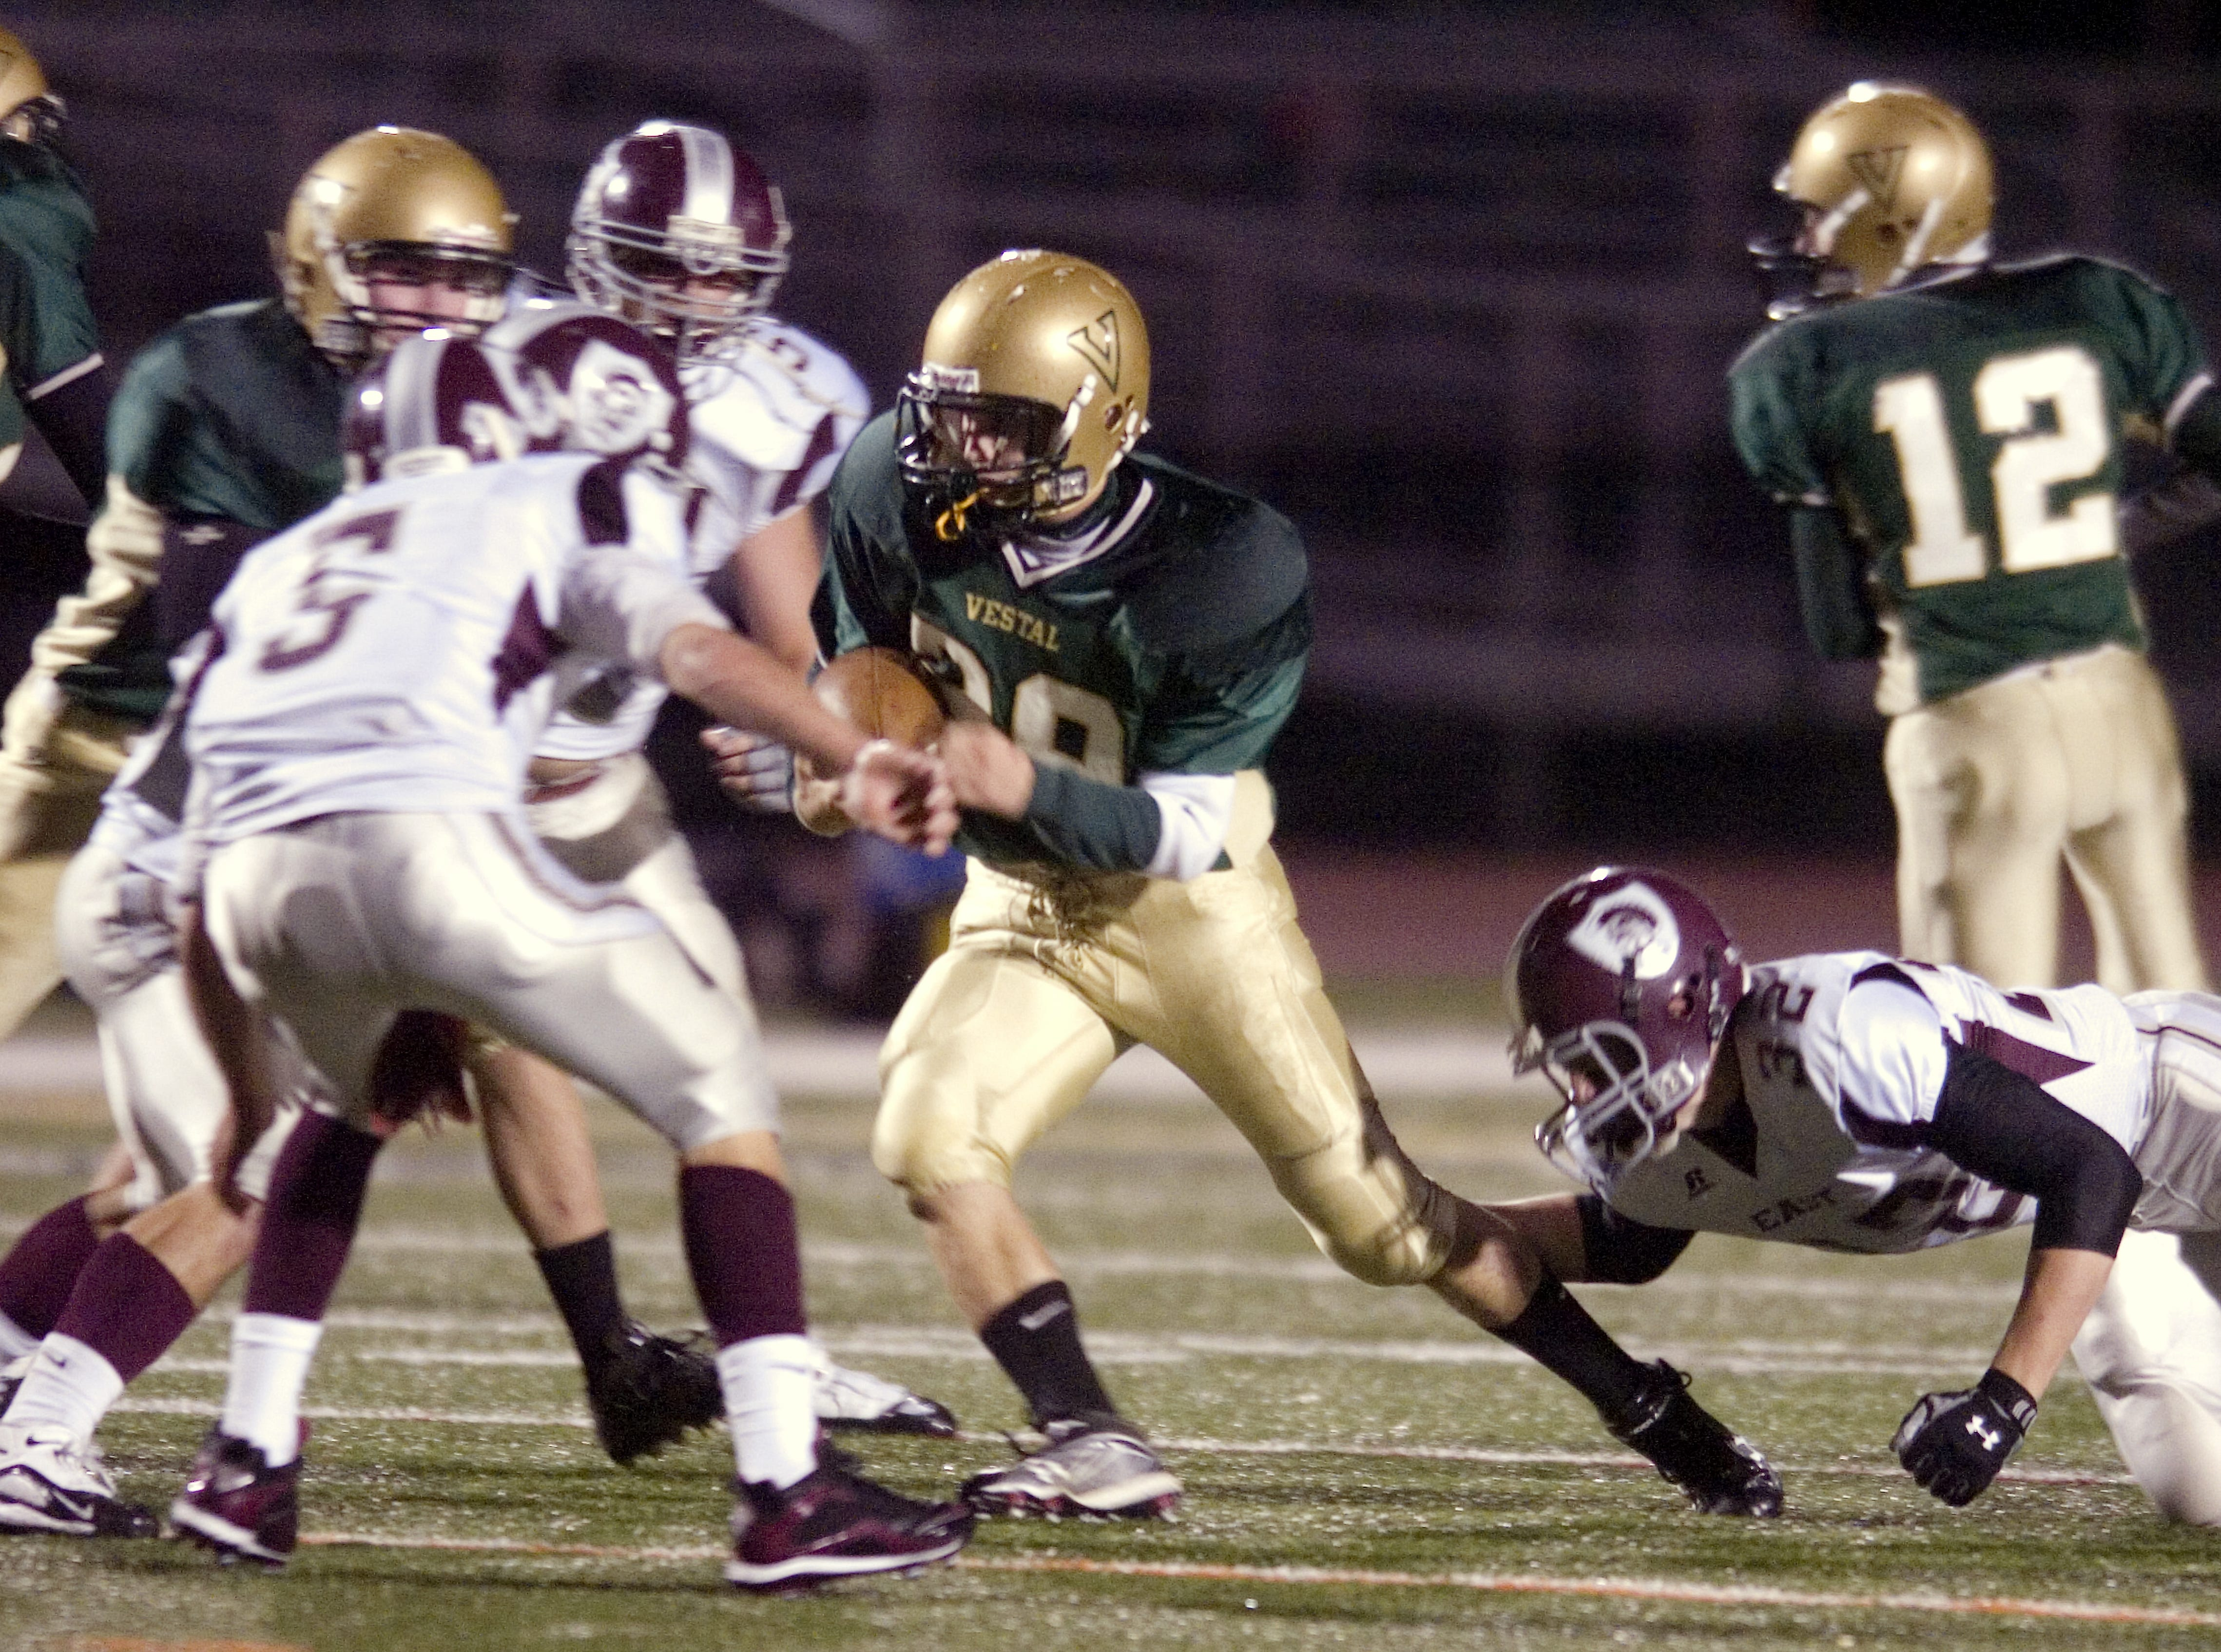 In 2009, Vestal's Brock Leonard, middle, evades Corning East's John Hartman, right, but is met by Brandon Griffin in the first quarter at Dick Hoover Stadium.